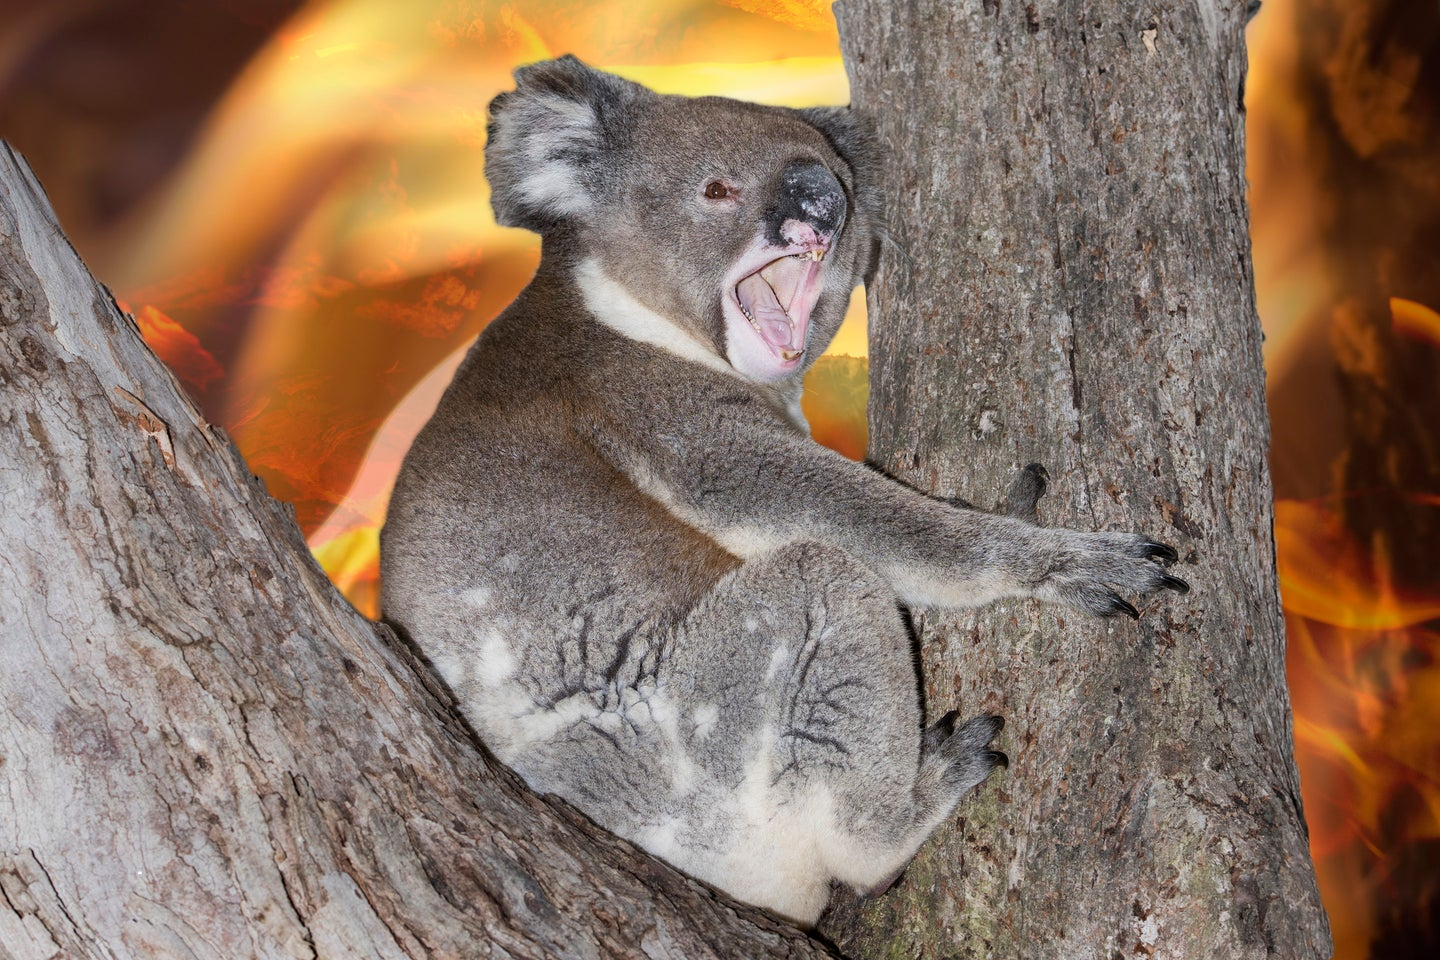 A koala yells out during last month's bushfires in southeastern Australia.